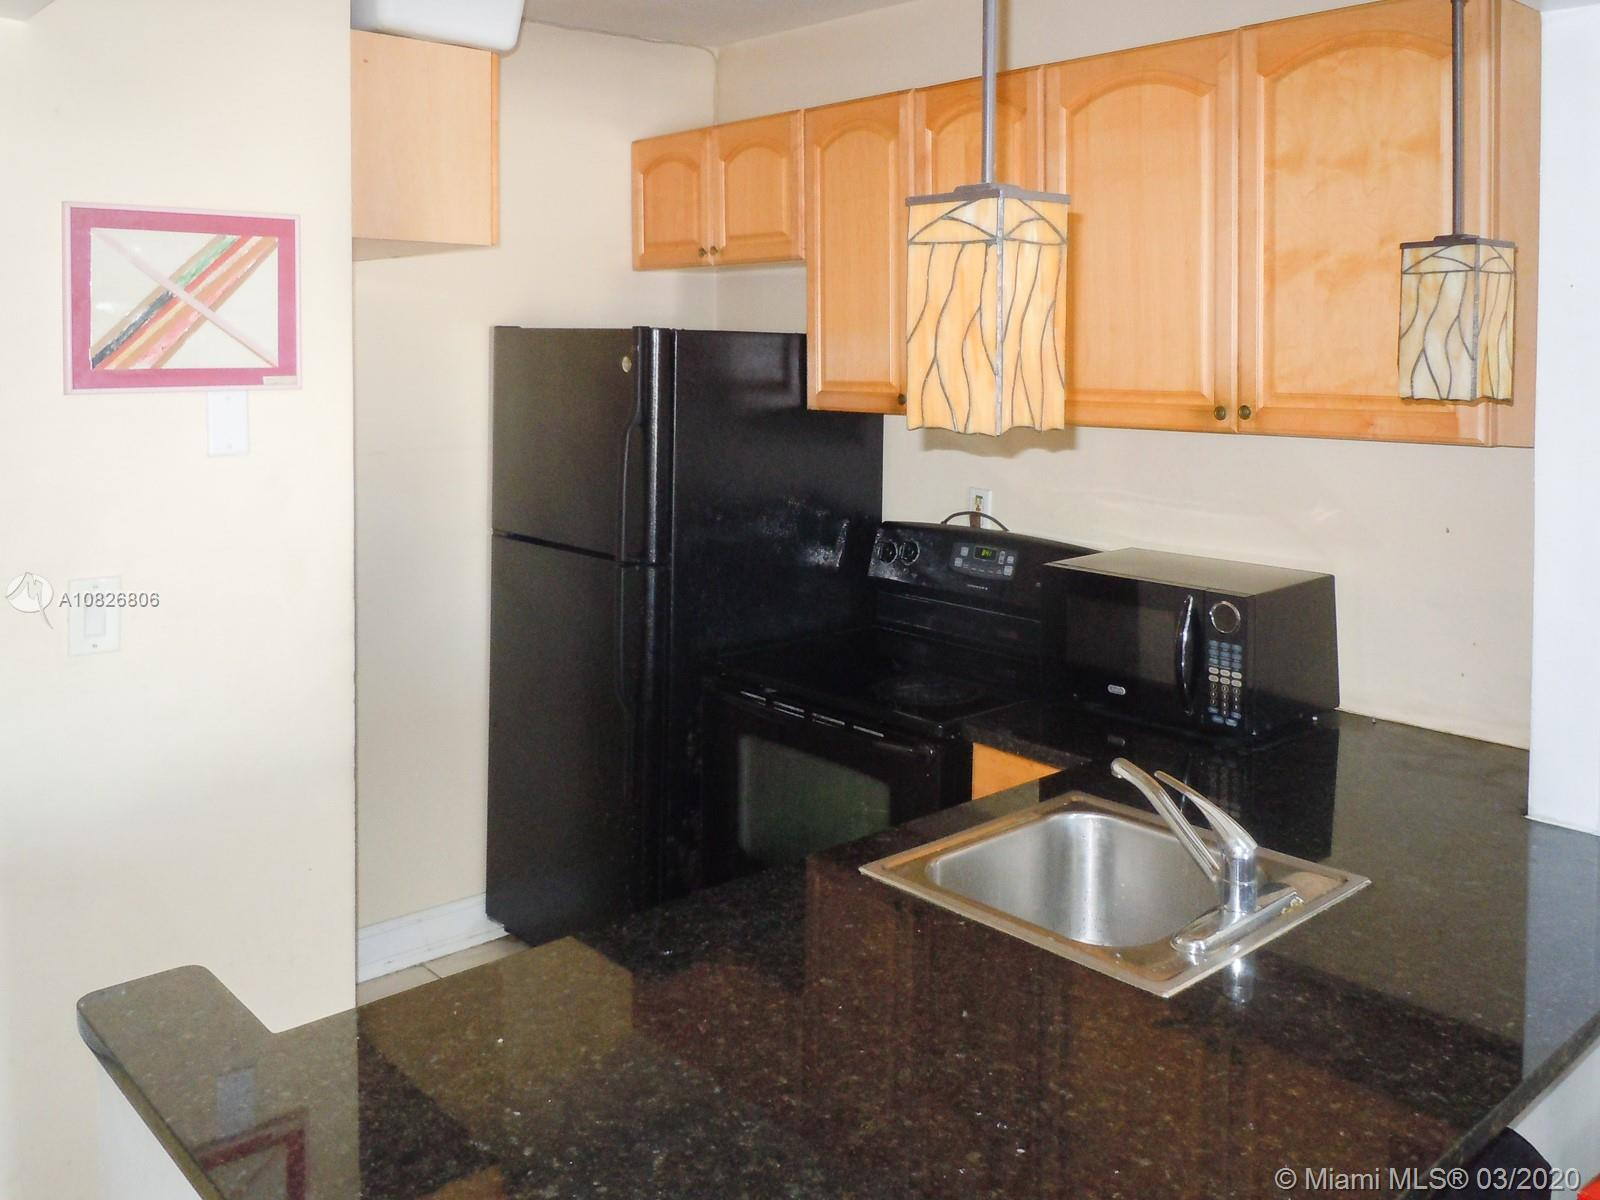 CHARM, LOCATION AND CONVENIENCE! Here you'll find an AWESOME STUDIO APARTMENT conveniently located i